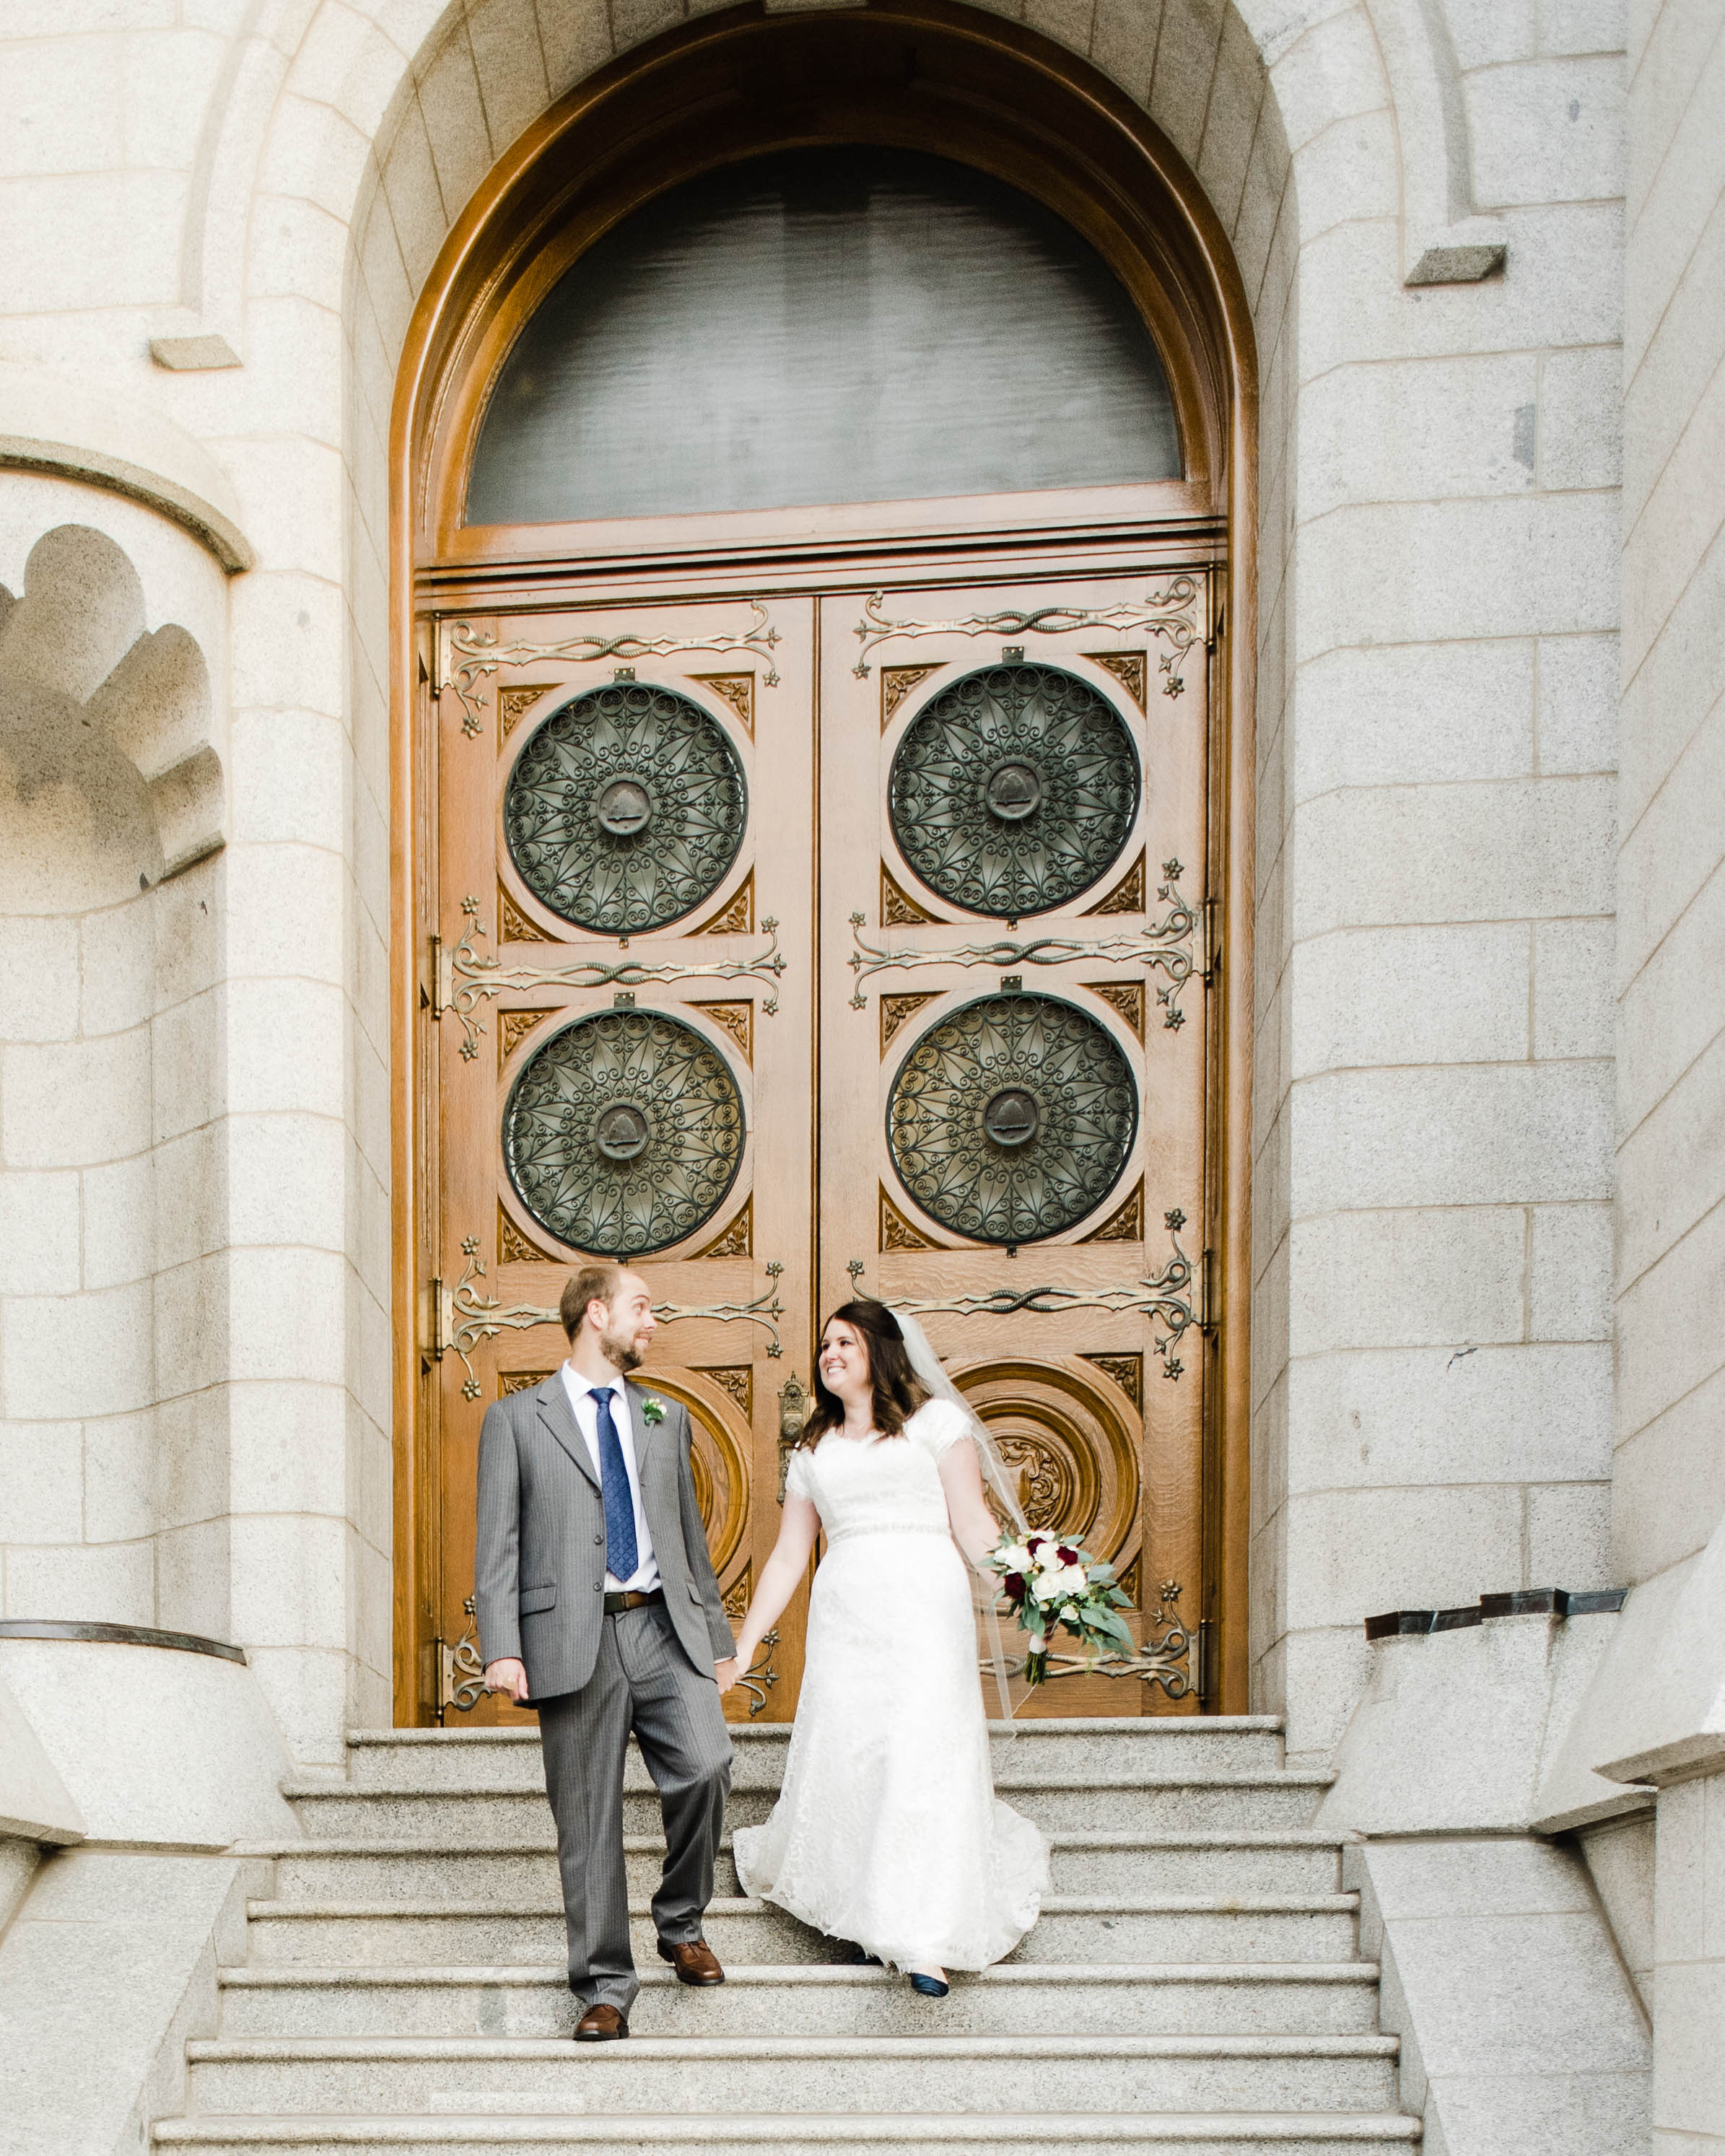 LINDSAY+BRAD-BRIDALS-Sadie_Banks_Photography-128.jpg